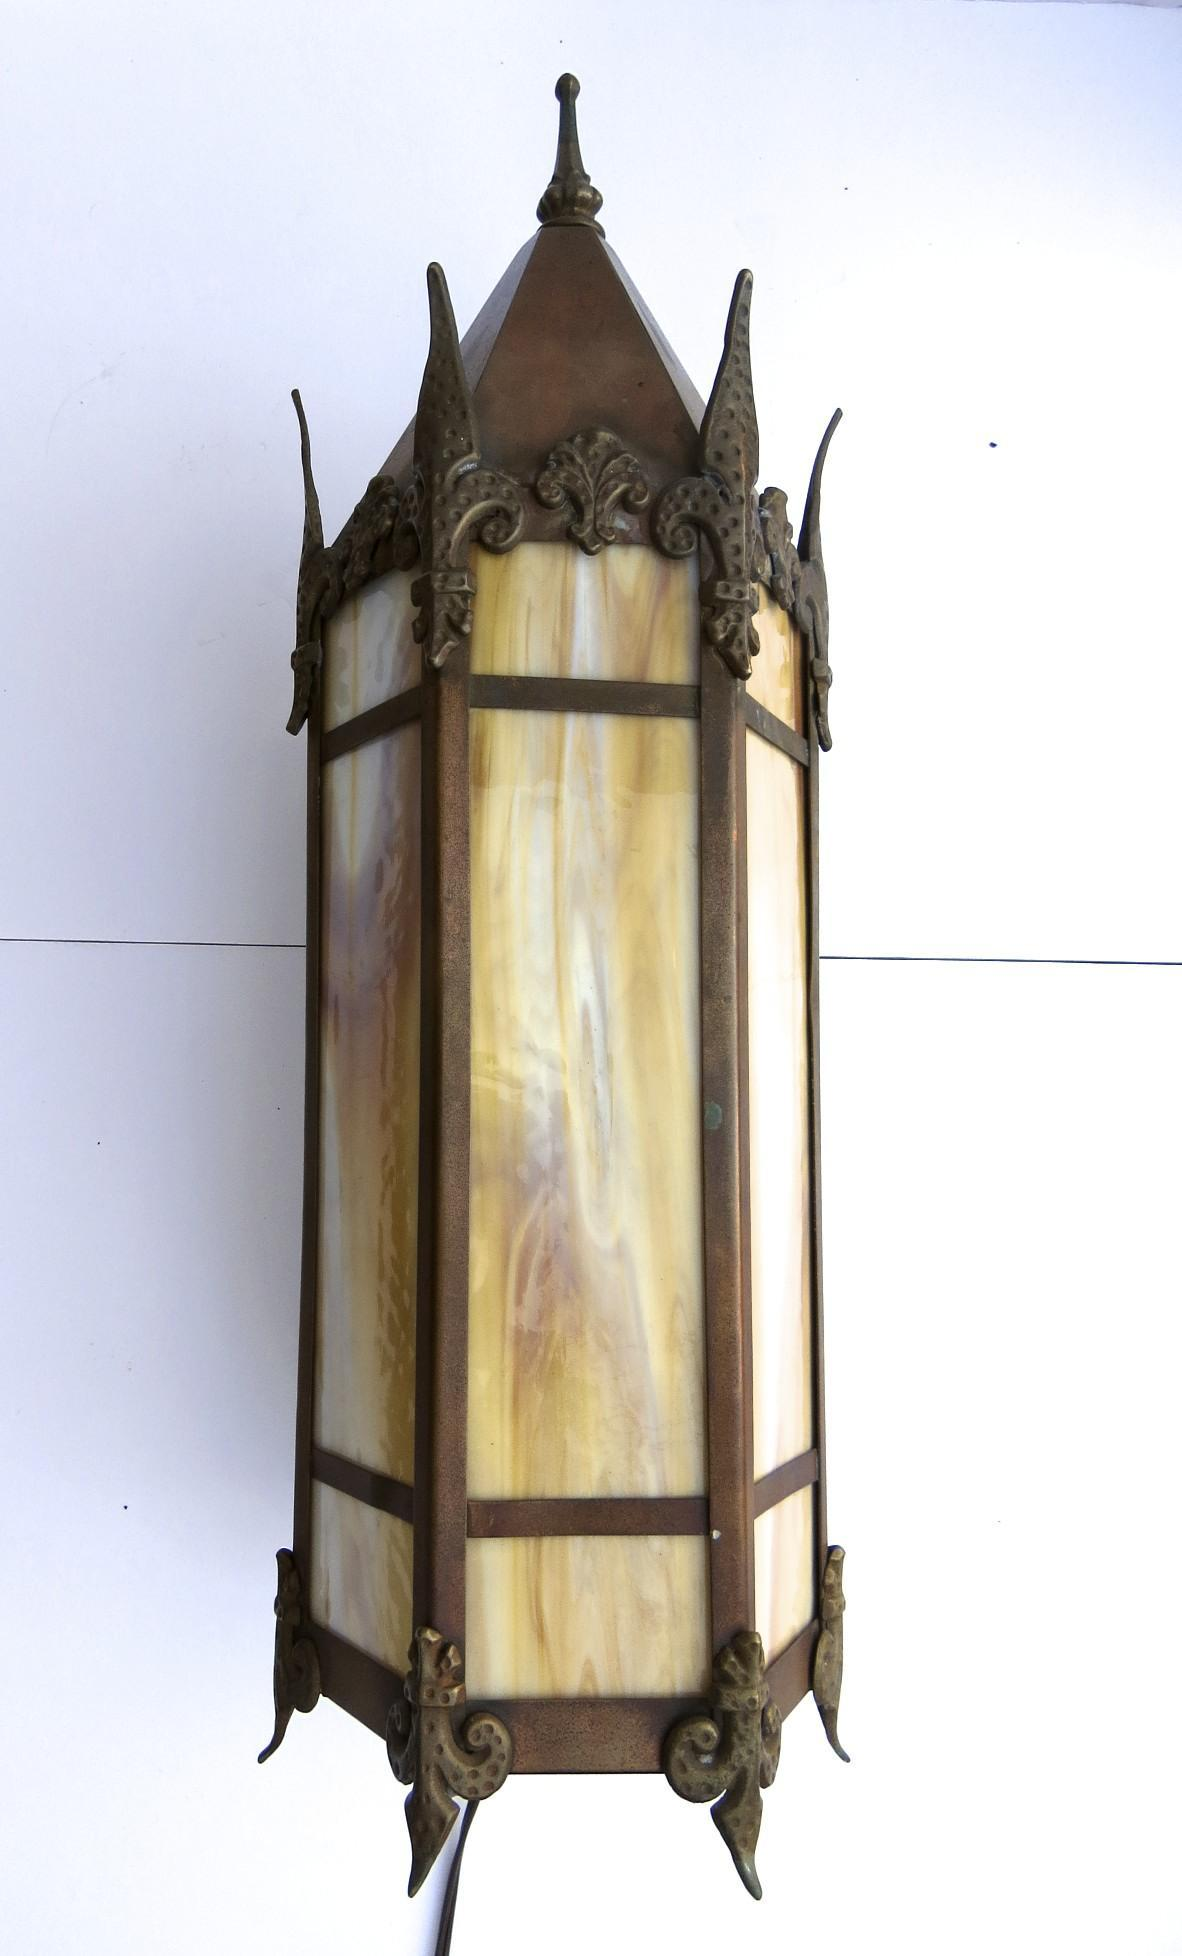 Wall Sconces Gothic : Copper Gothic Wall Sconce Peaked Top from blacktulip on Ruby Lane